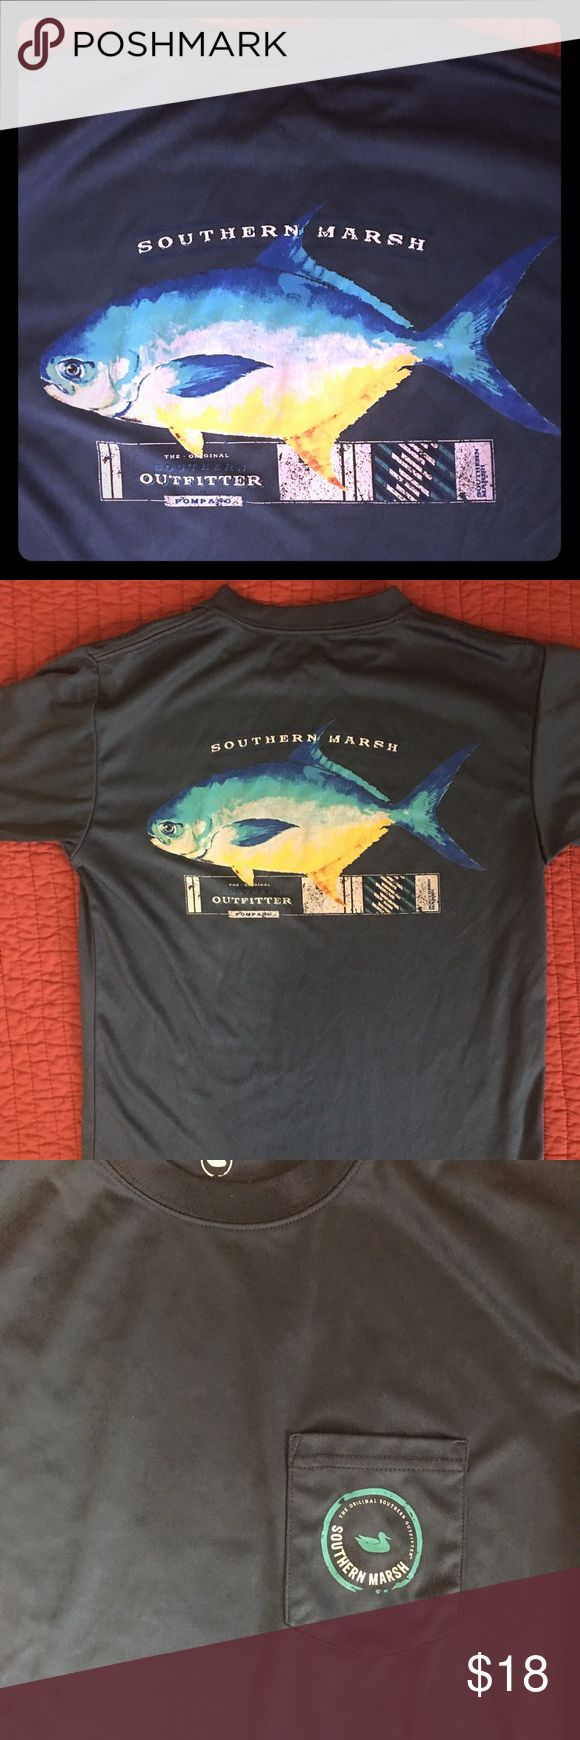 """Boys L Southern Marsh Fishing T Shirt """"Fieldtech"""" fabric T shirt; I'm not sure if it's technically an SPF fabric but this is their nicer high end fabric, not cotton. Youth L, fit us best at size 12-14. Southern Marsh Shirts & Tops Tees - Short Sleeve"""